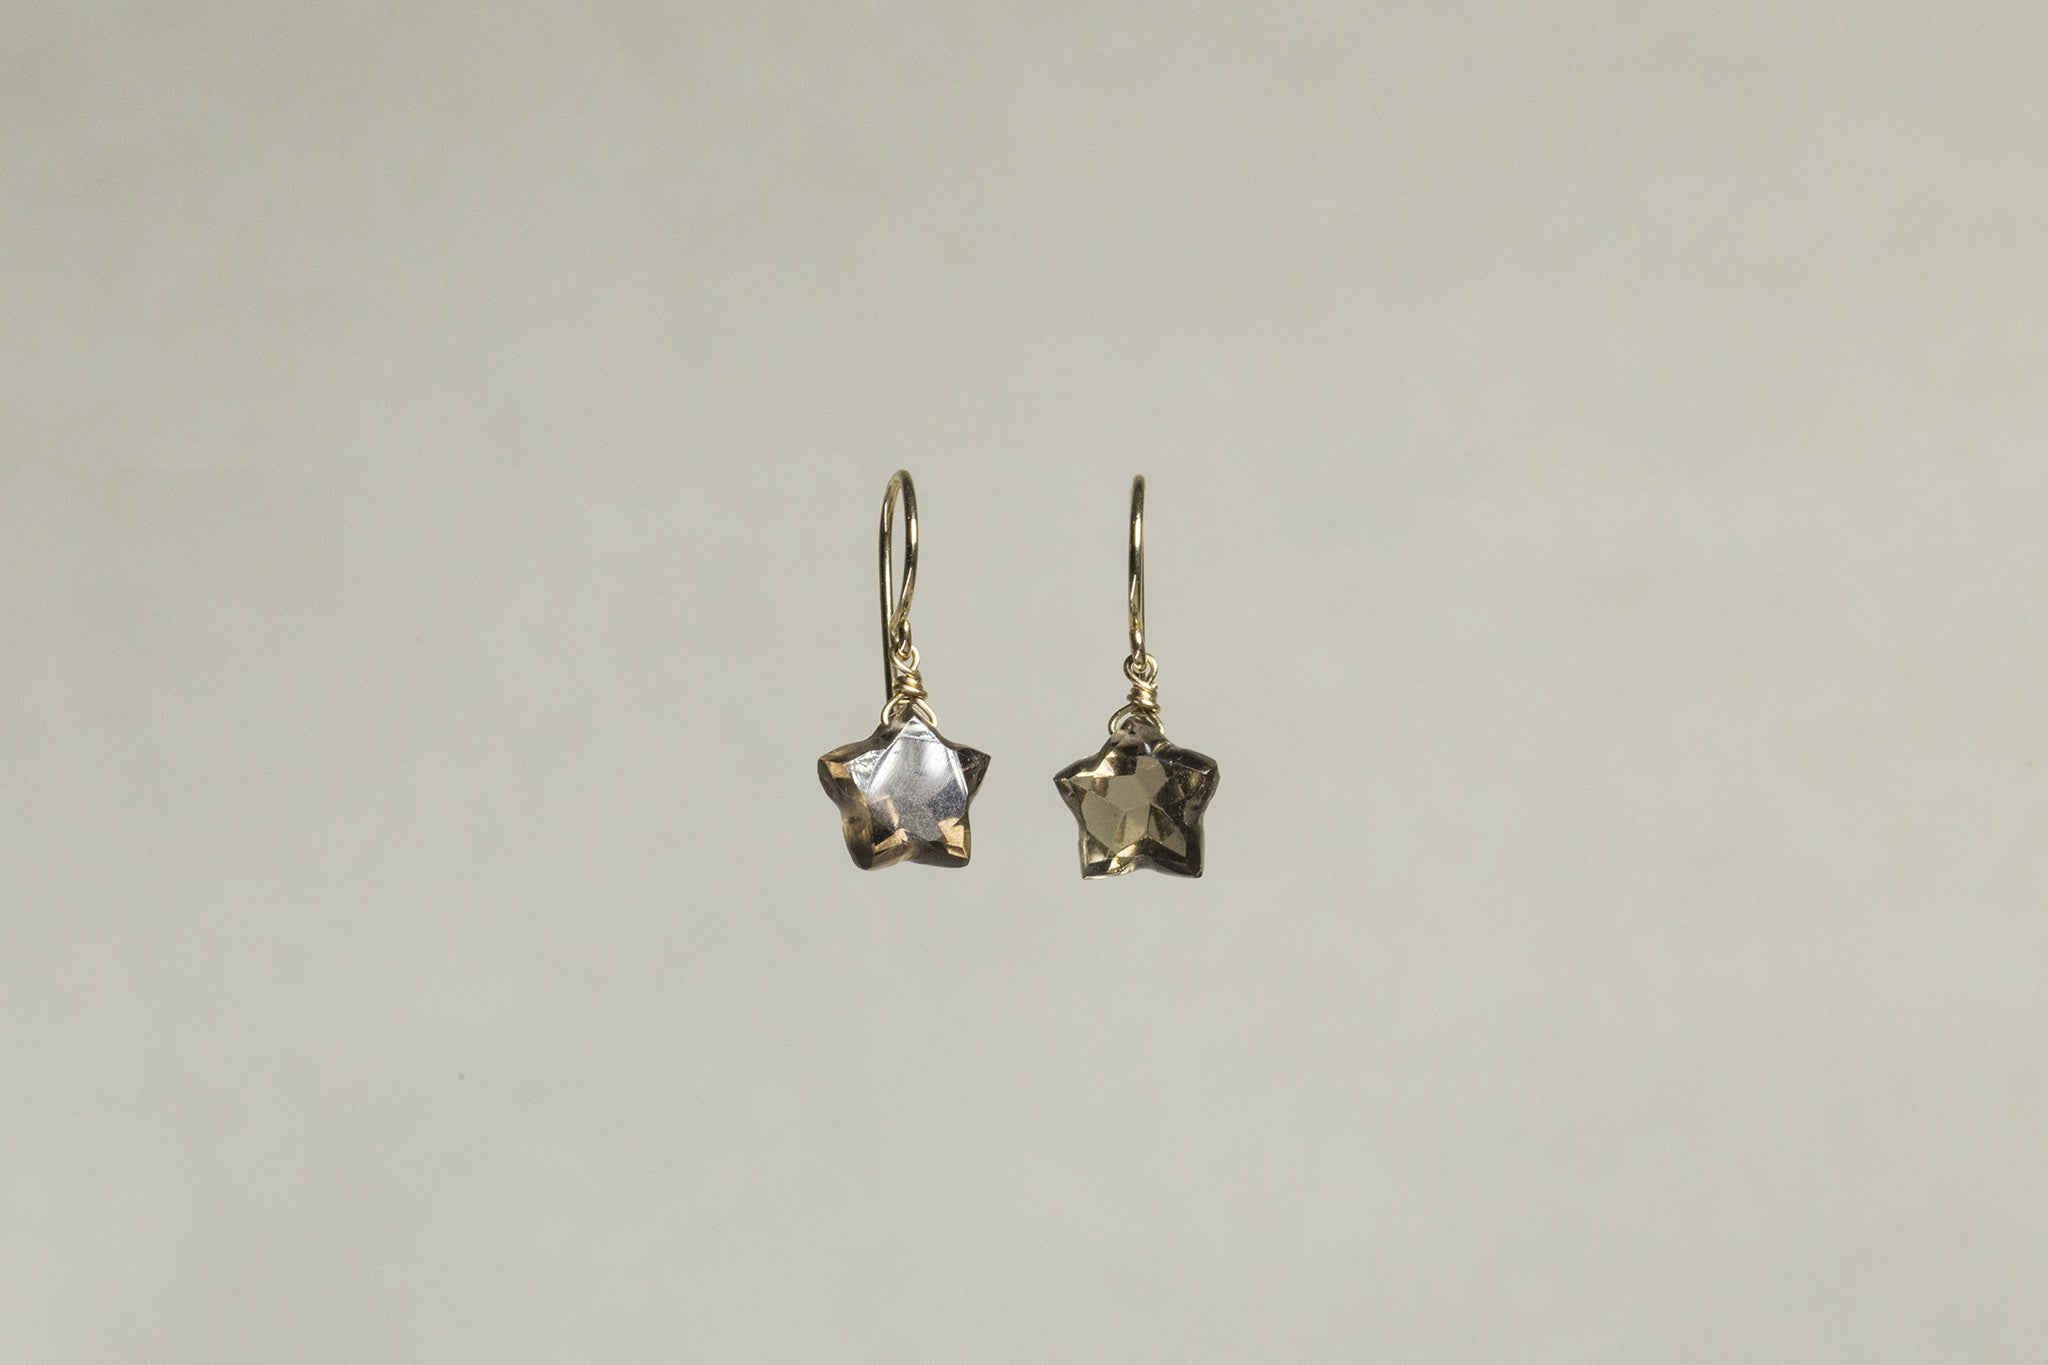 super star drop earrings made from star faceted quartz - dark version also available online